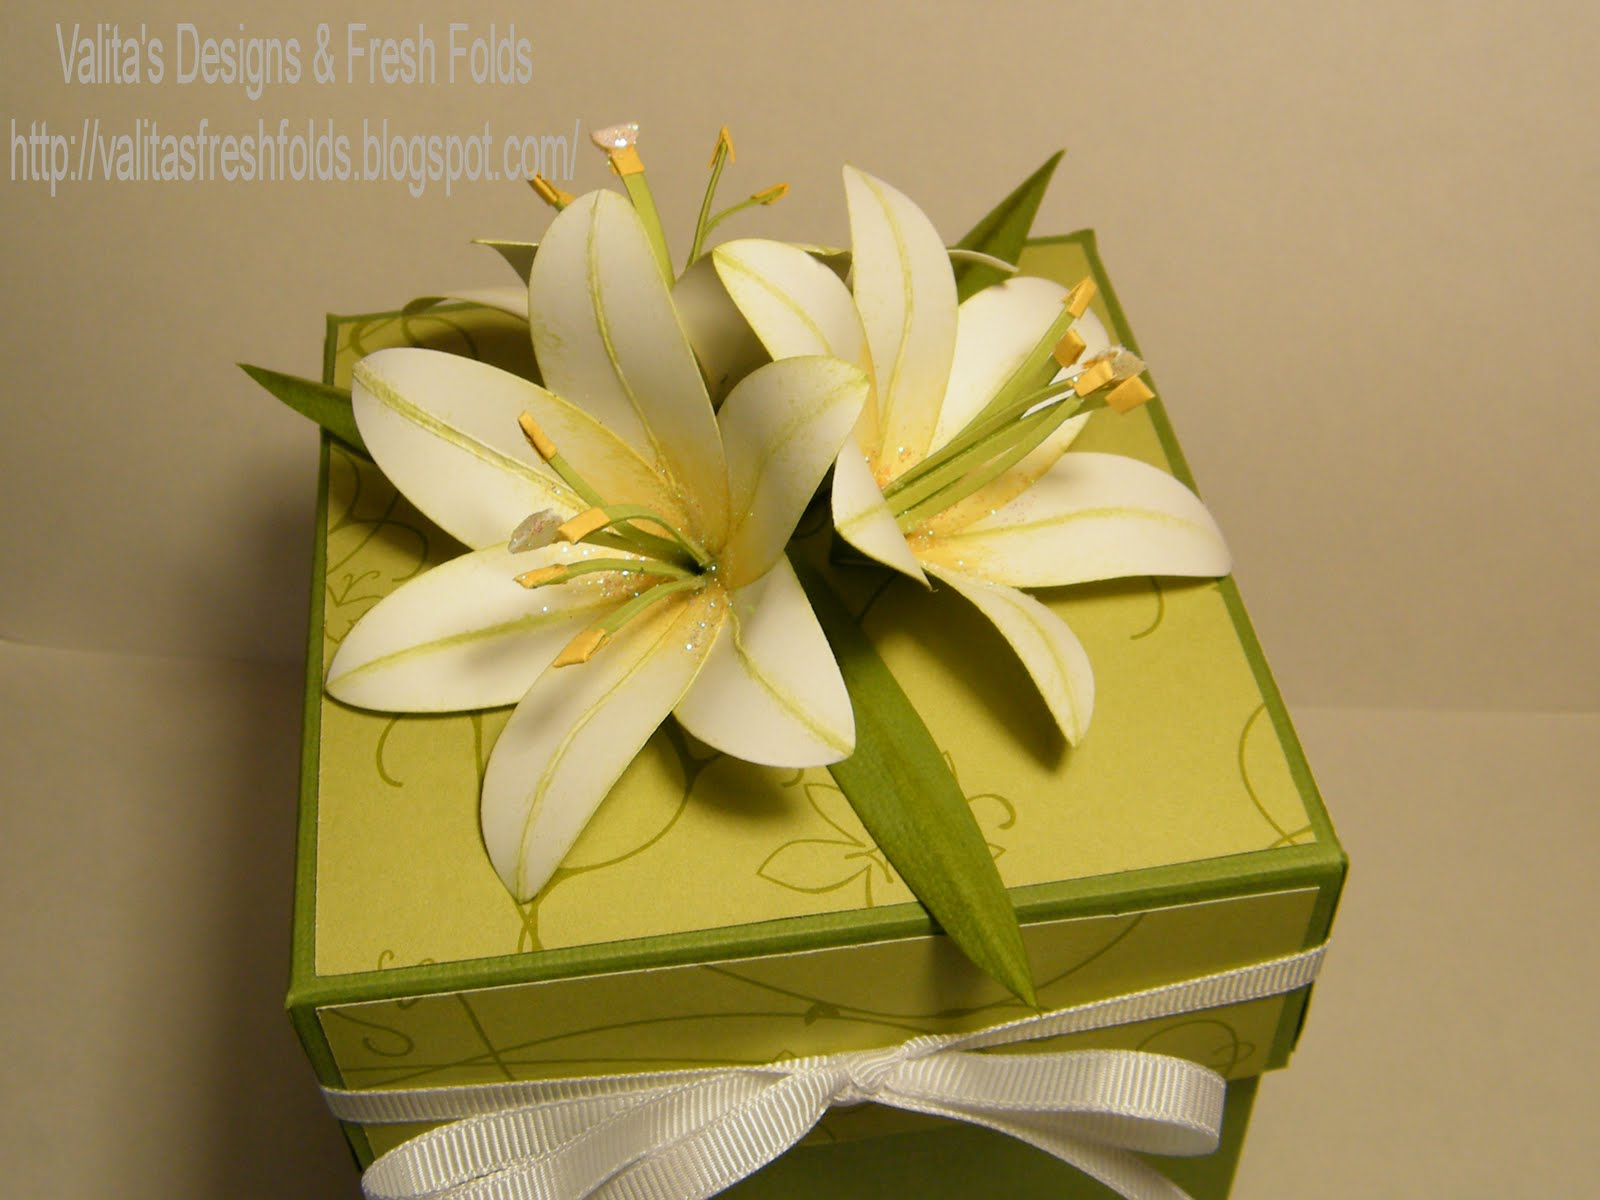 Valitas designs fresh folds punched paper lily monday june 7 2010 izmirmasajfo